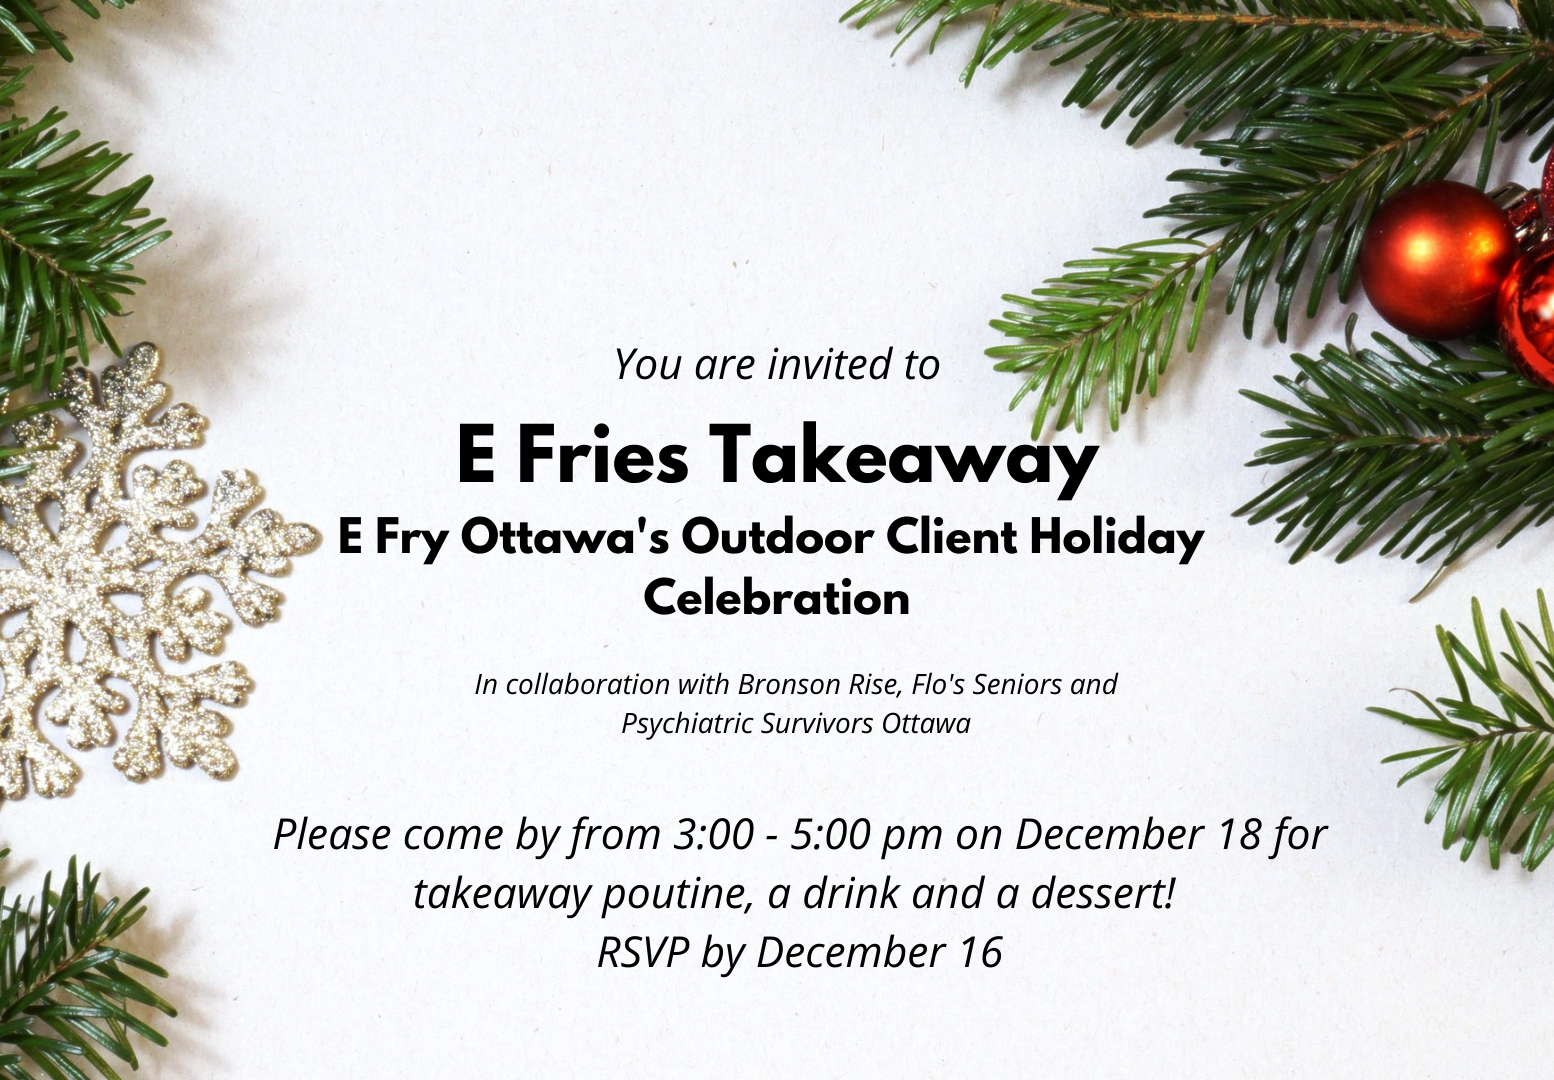 E Fries Takeaway Client Holiday Celebration new